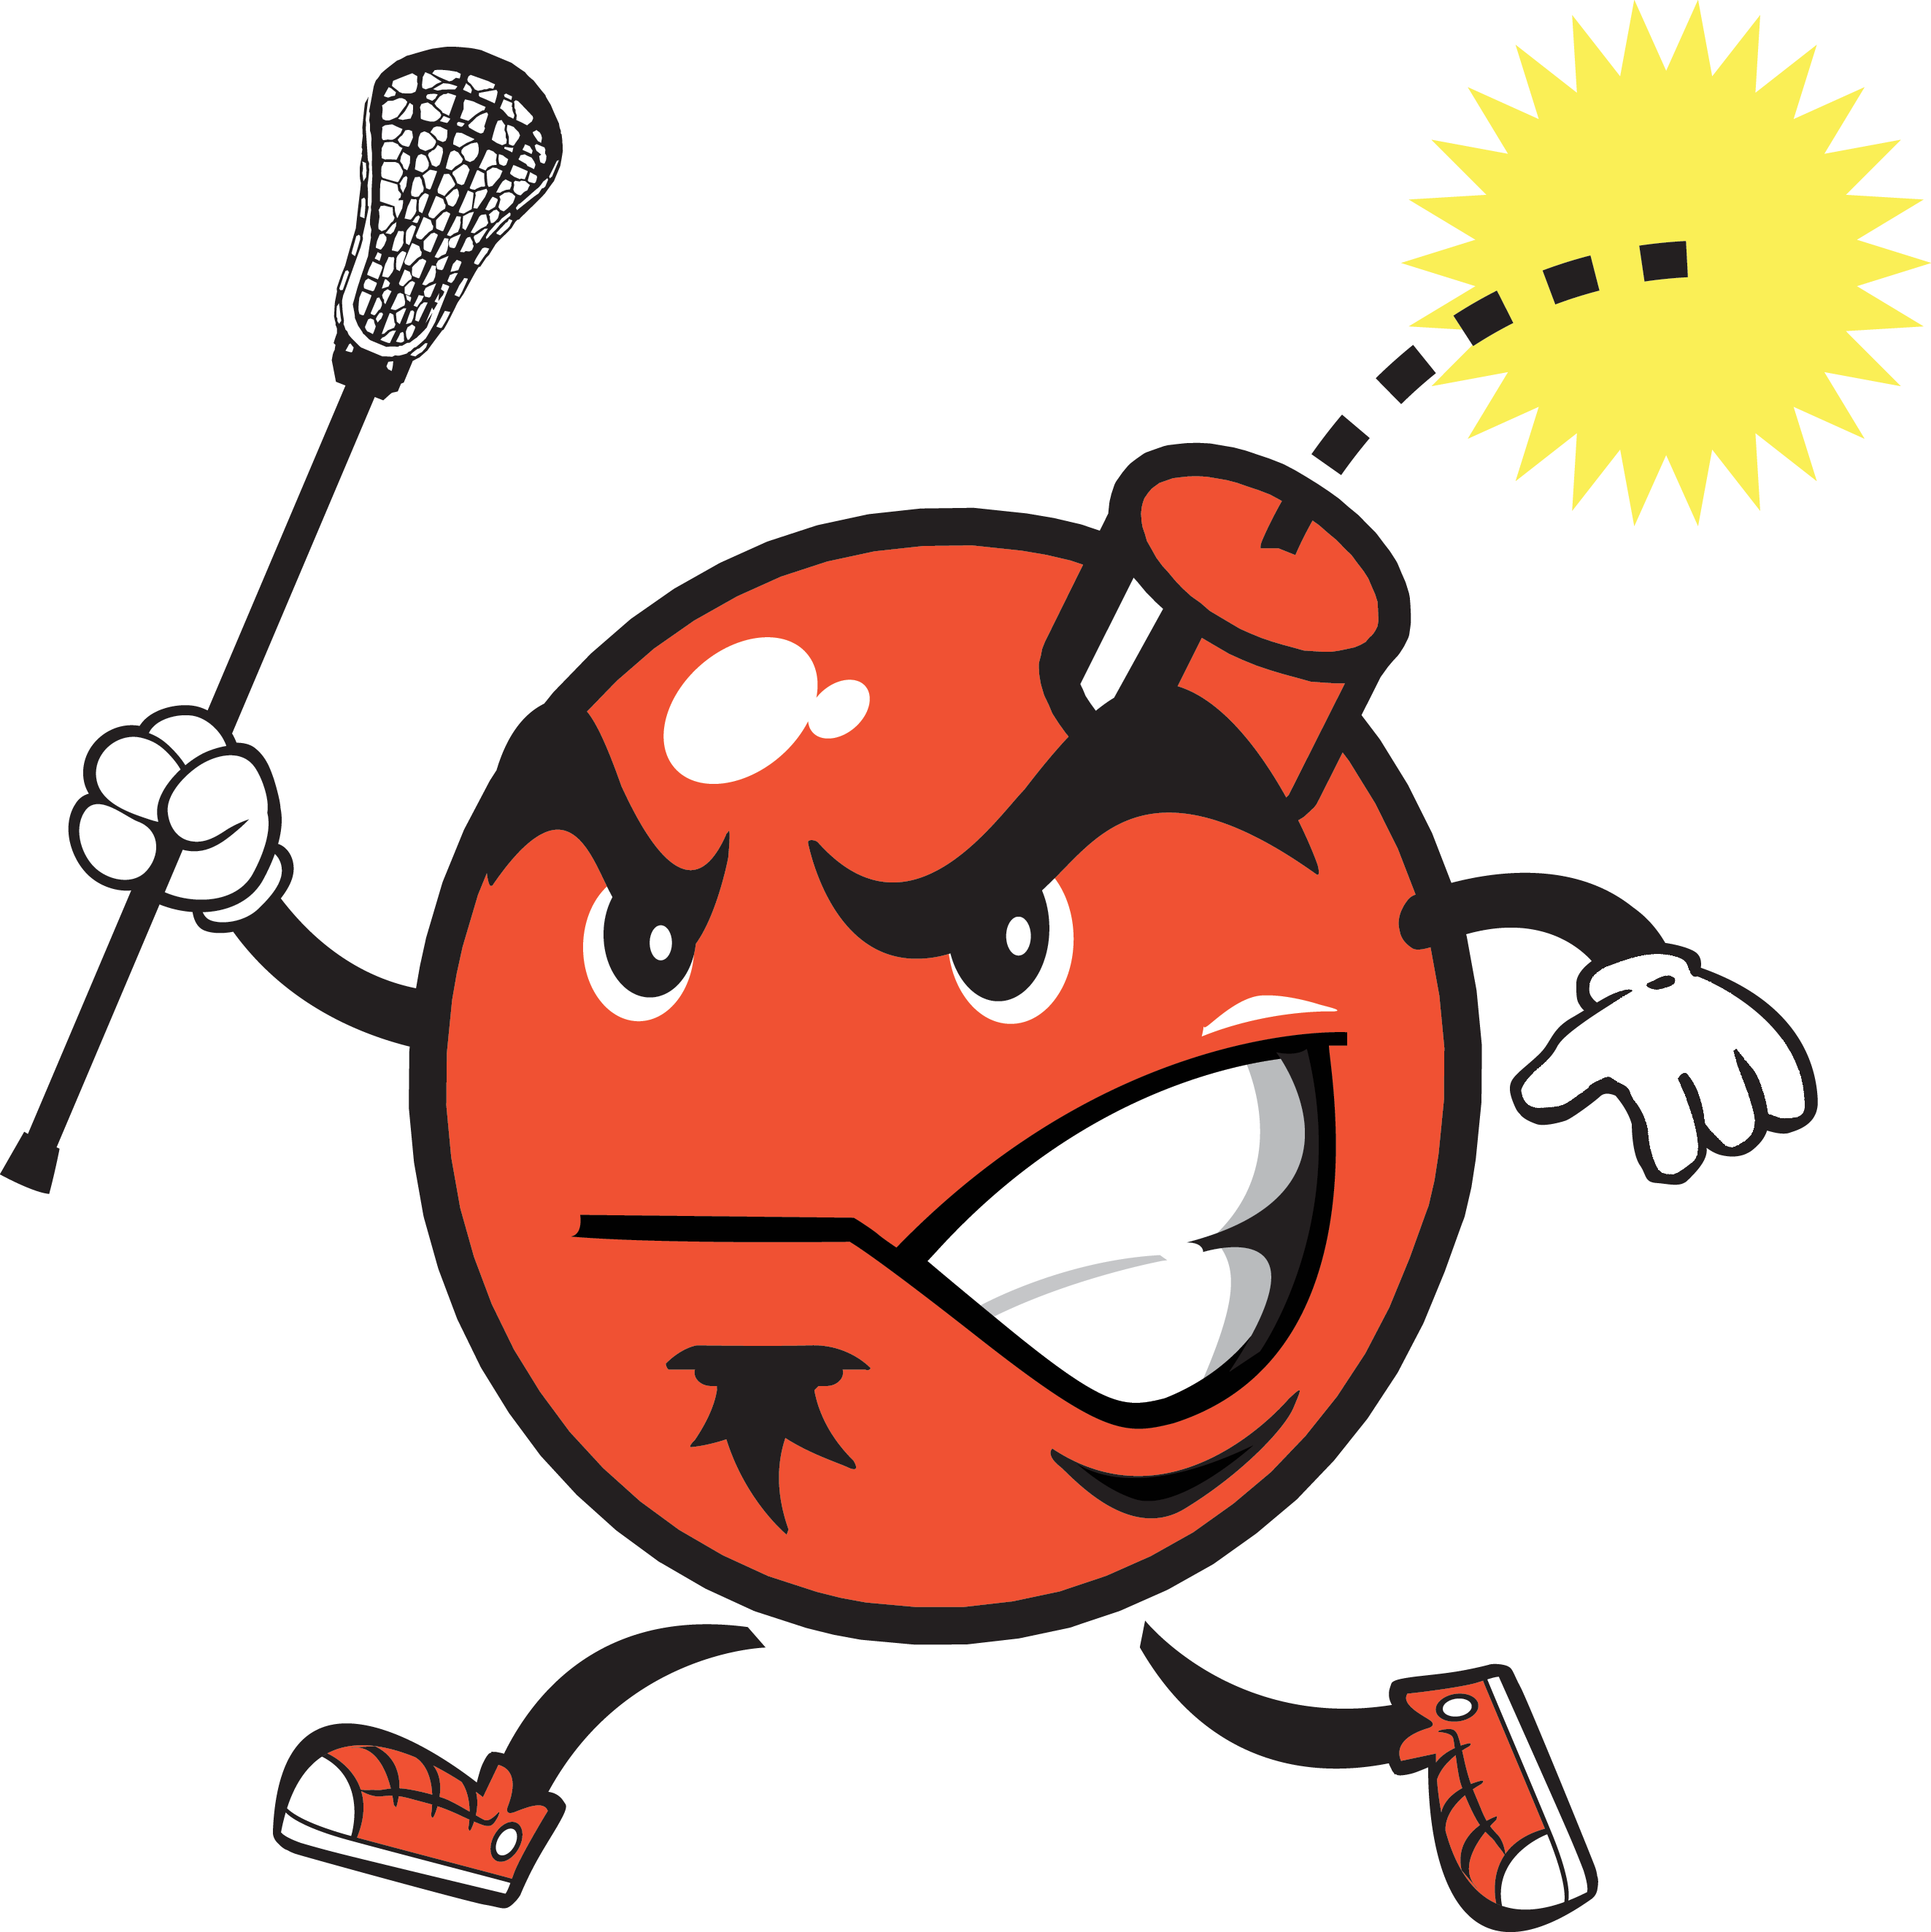 Lacrosse clipart boys lacrosse. Home cherry bomb tournament